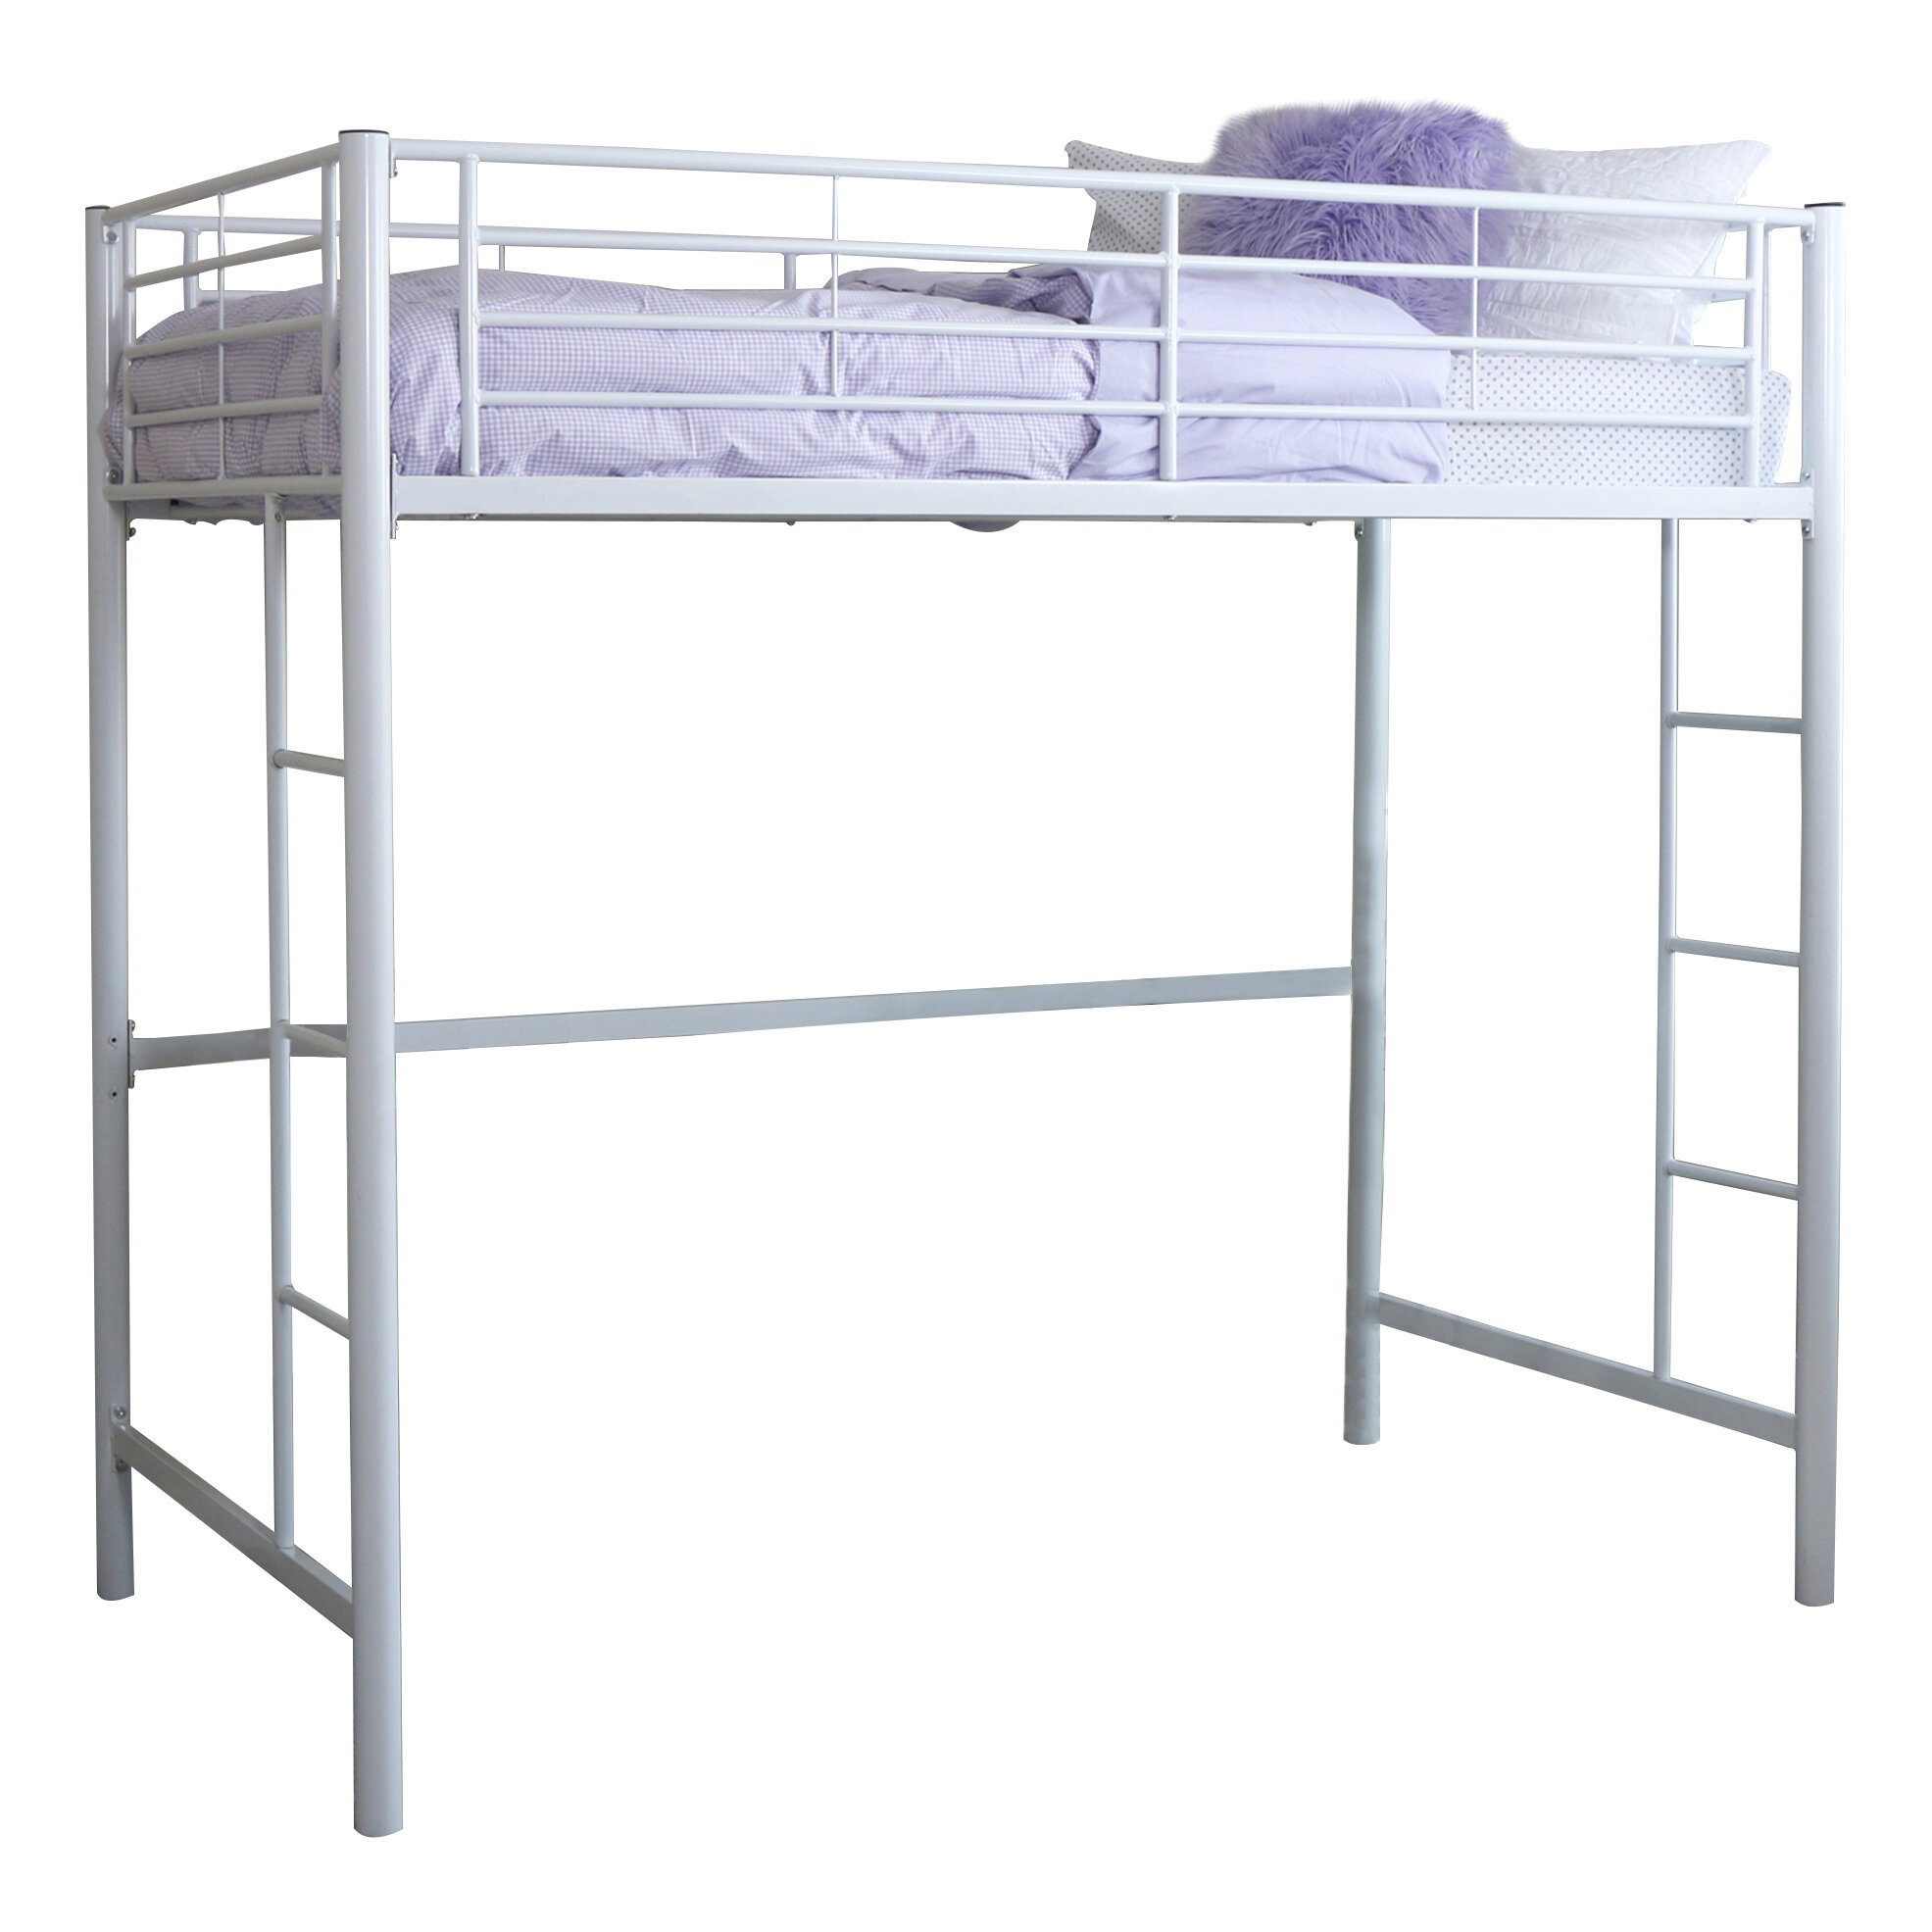 sc anderson you loft bed wood home furniture twin